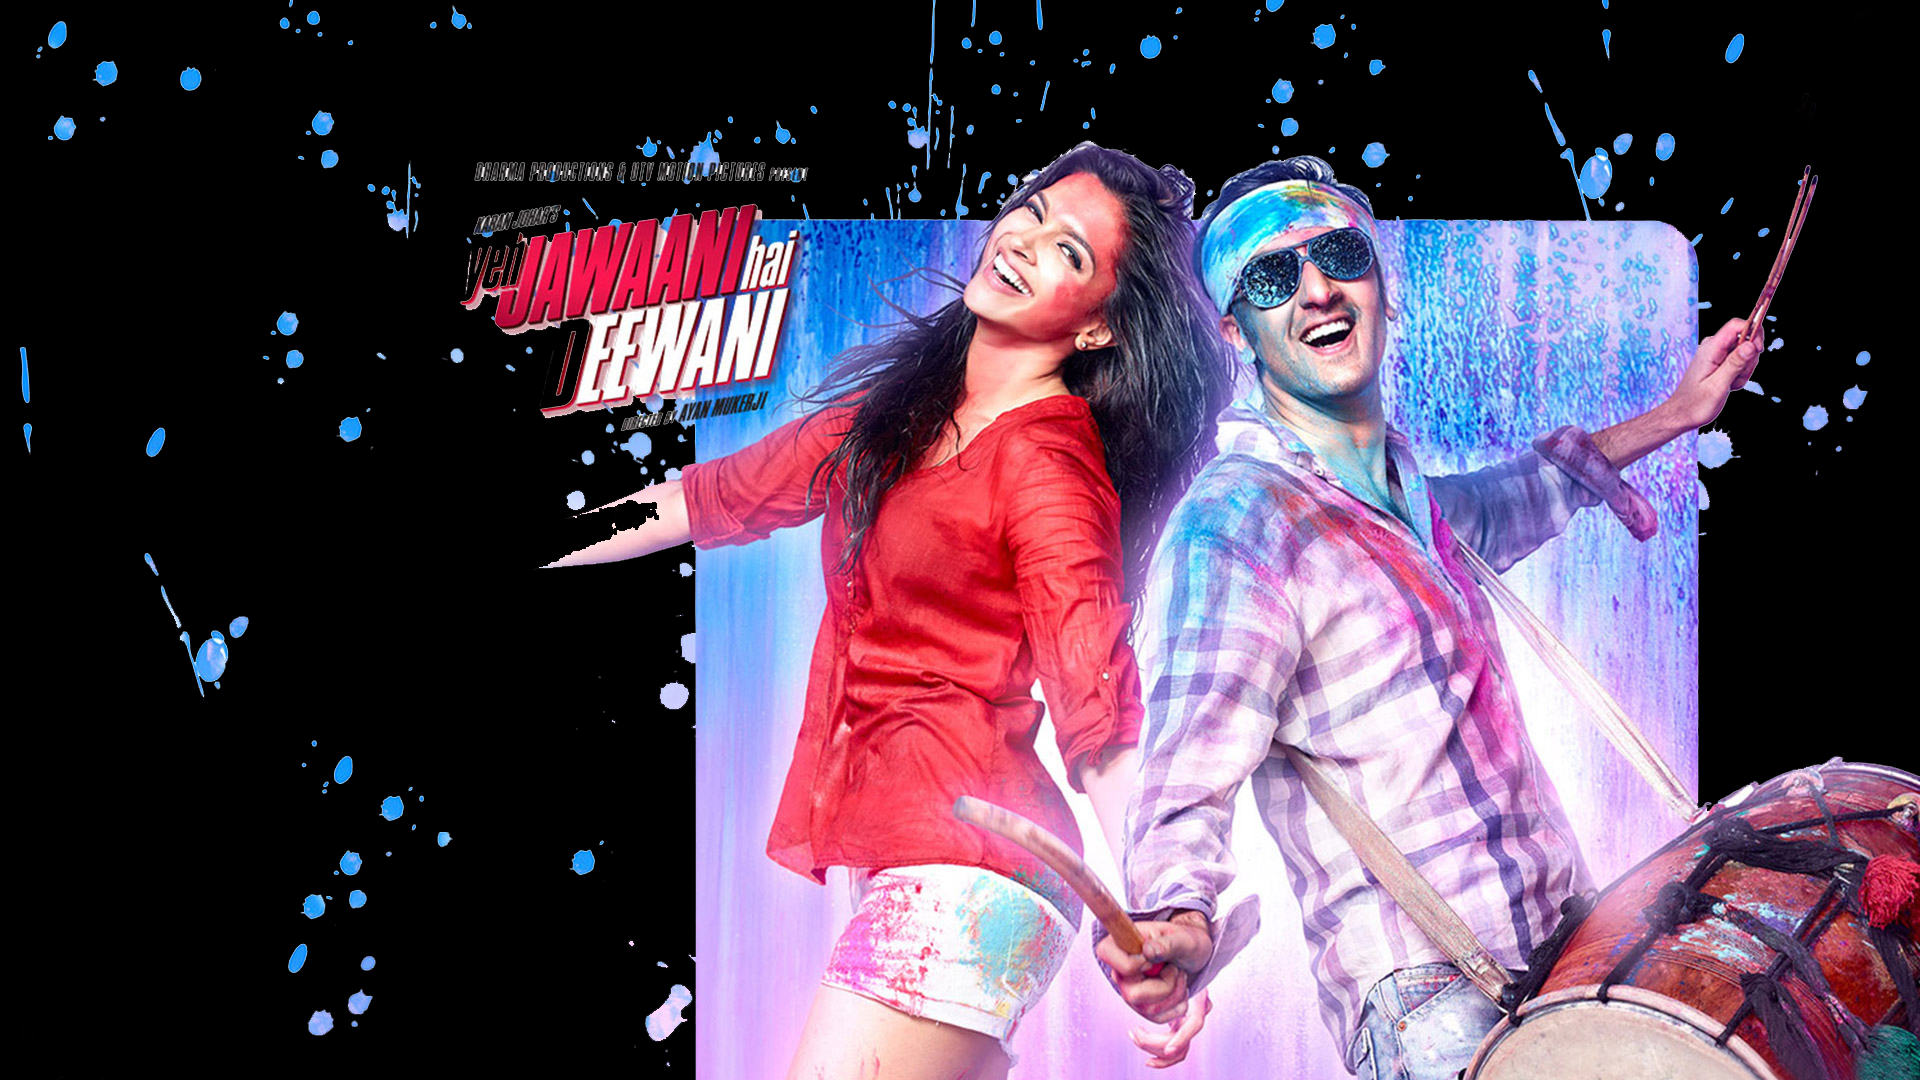 Watch: 'Yeh Jawaani Hai Deewani' Trailer!